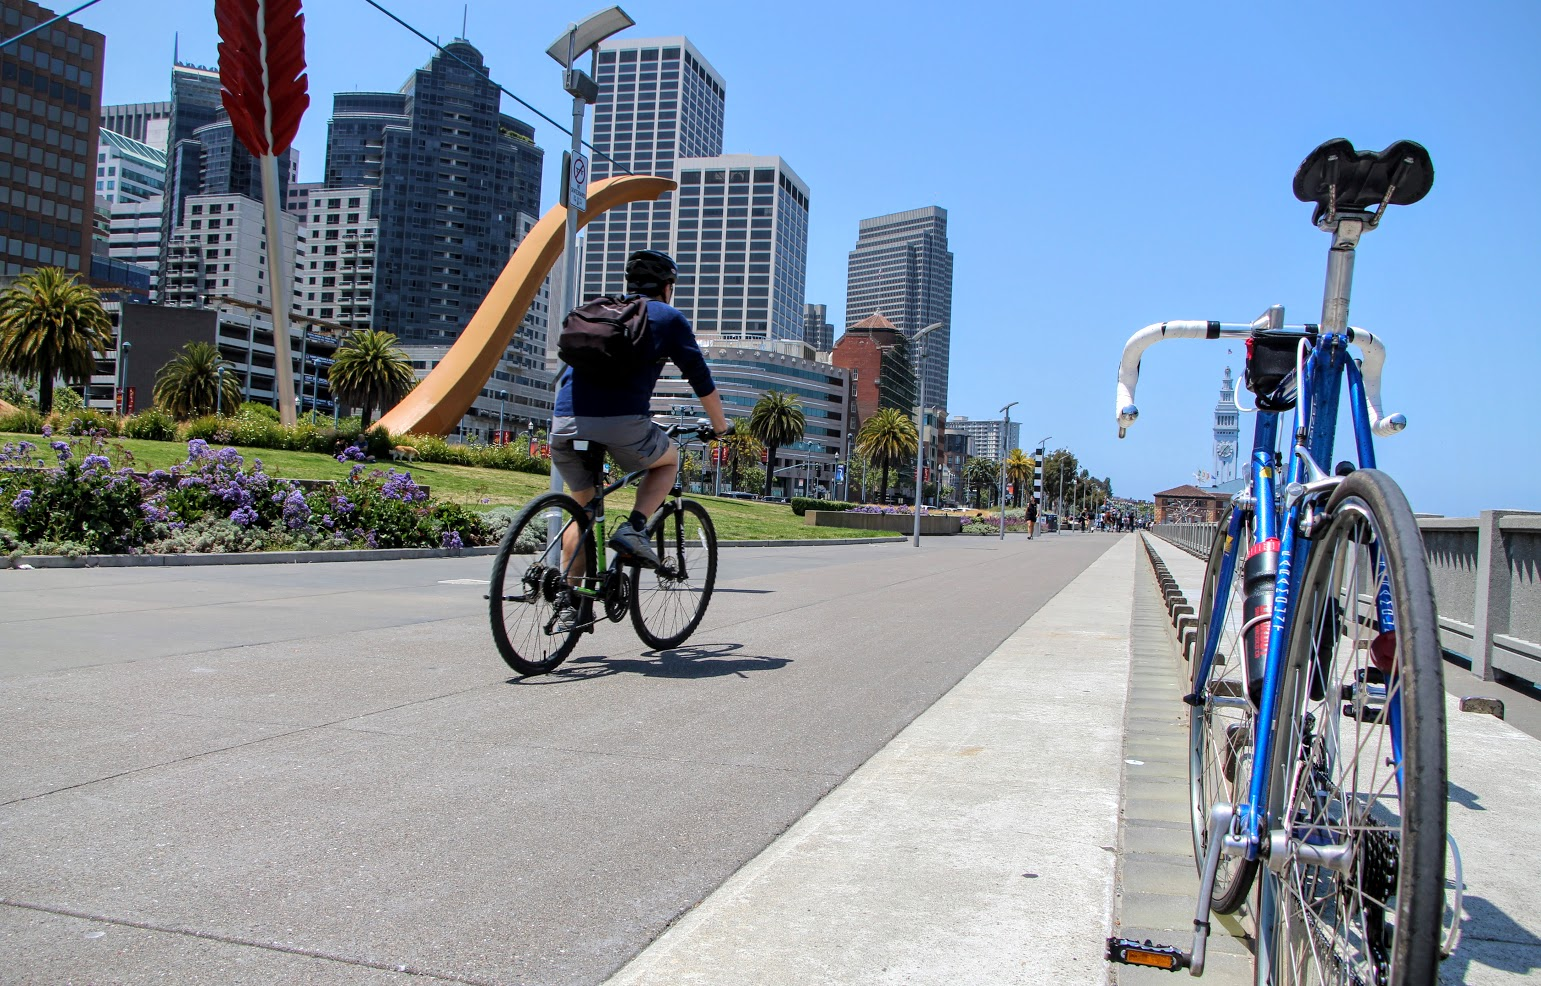 Embarcadero SF: A Bike Ride Along The San Francisco Bay Trail